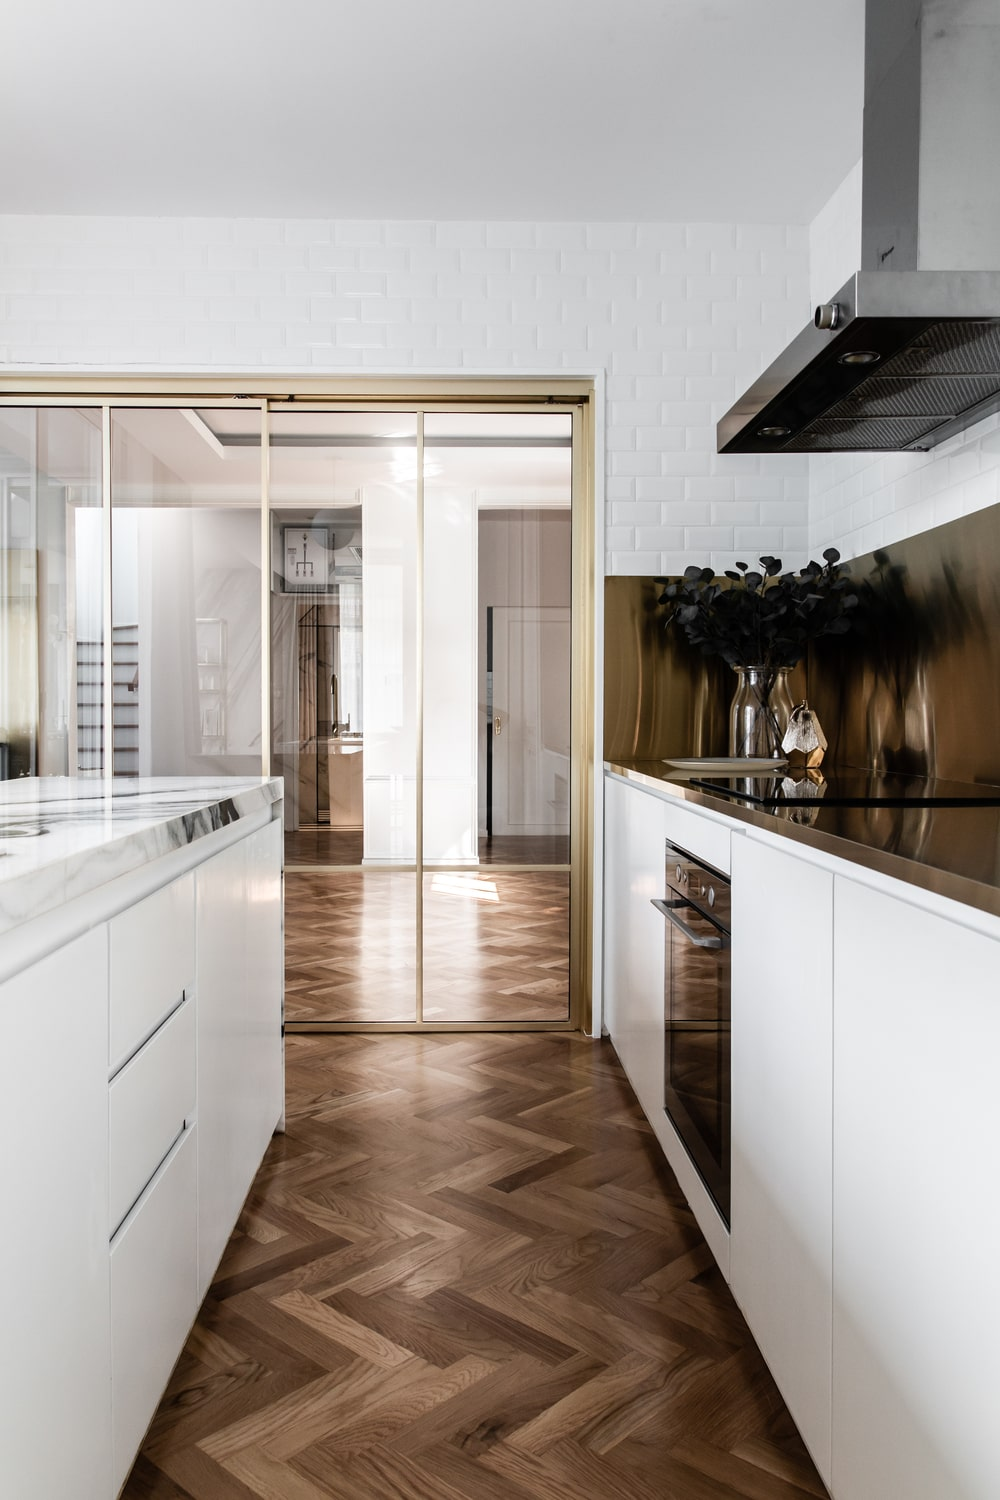 This is a view of the kitchen showcasing the proximity of the white marble kitchen island to the kitchen counter.